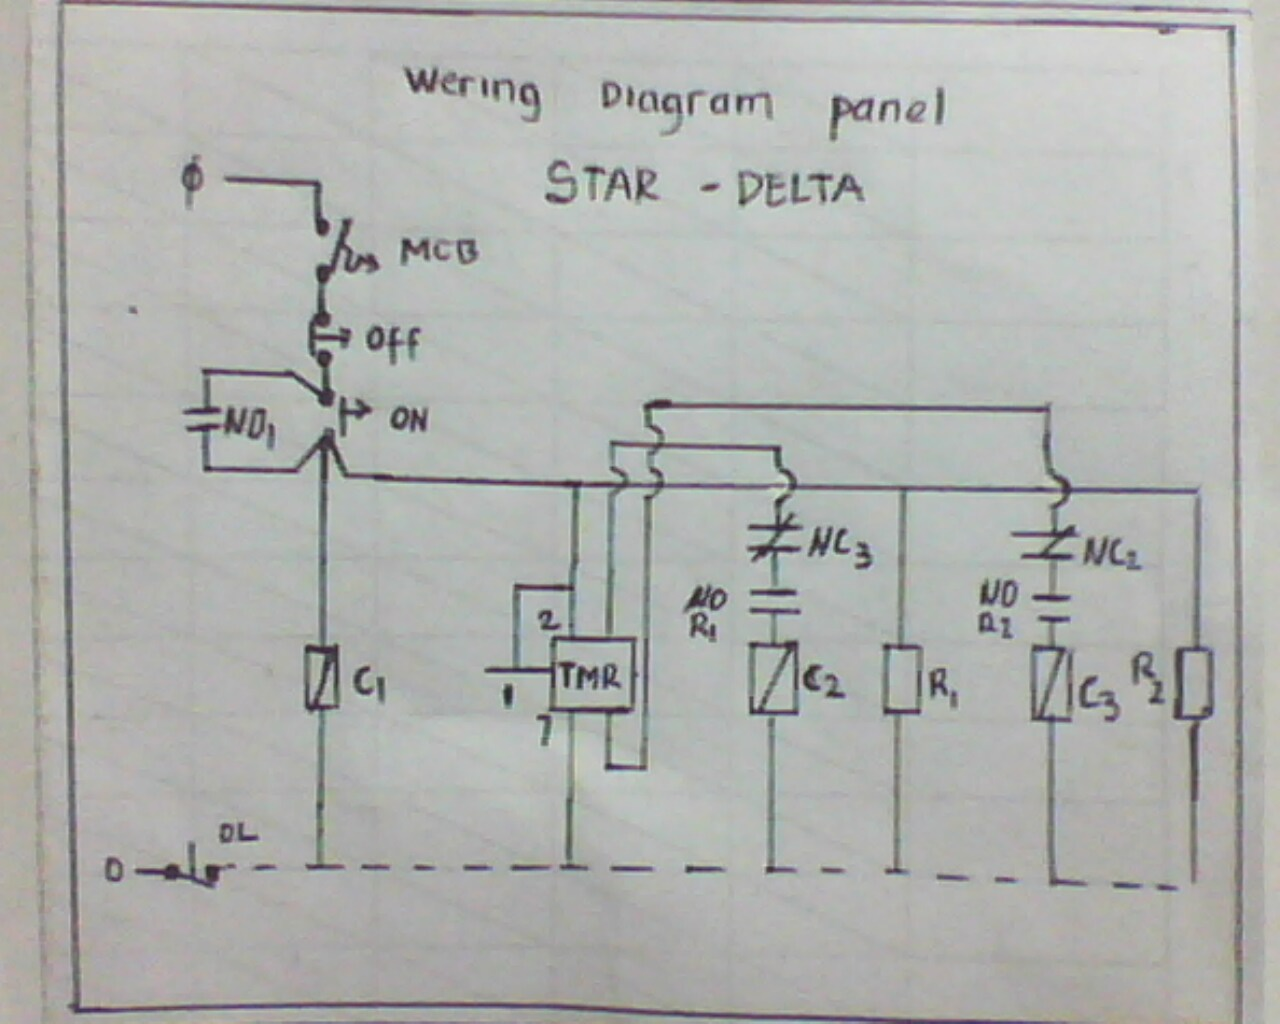 Power Wiring Diagram Of Star Delta Starter Library Electrical Is The Circuit To Run Electric Motor Which At Time